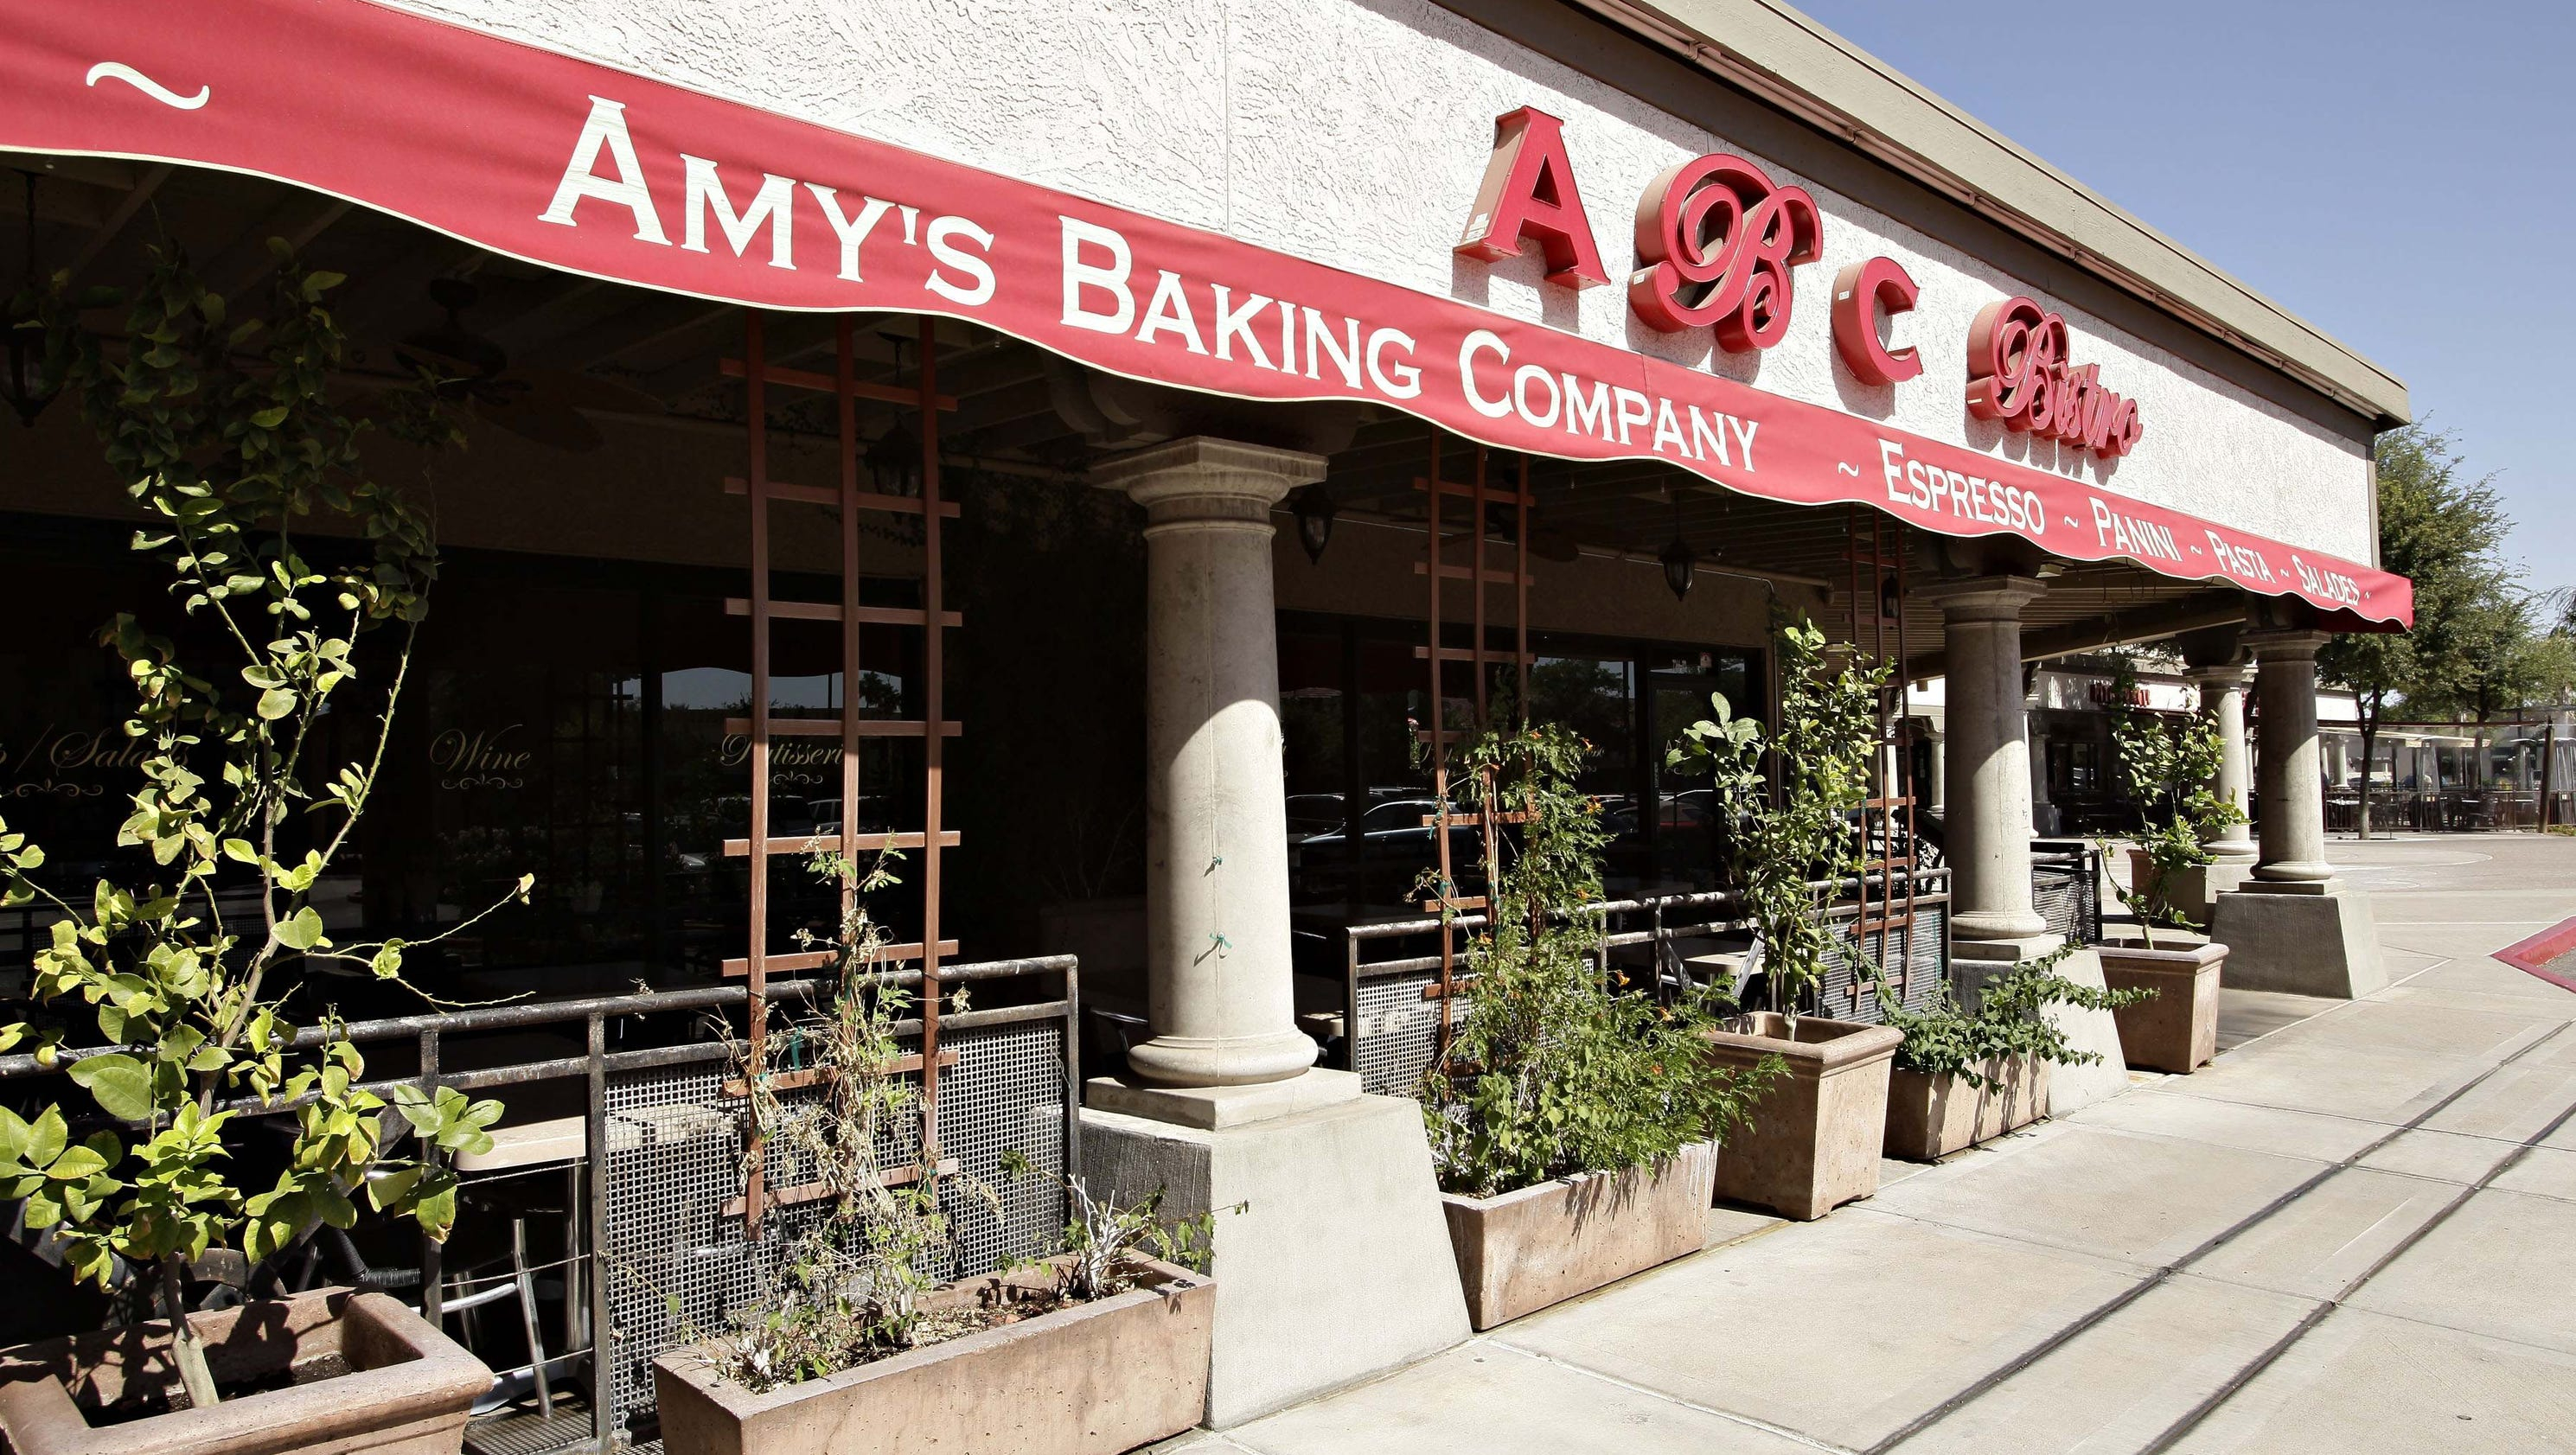 Amy S Baking Company In Scottsdale Has Closed